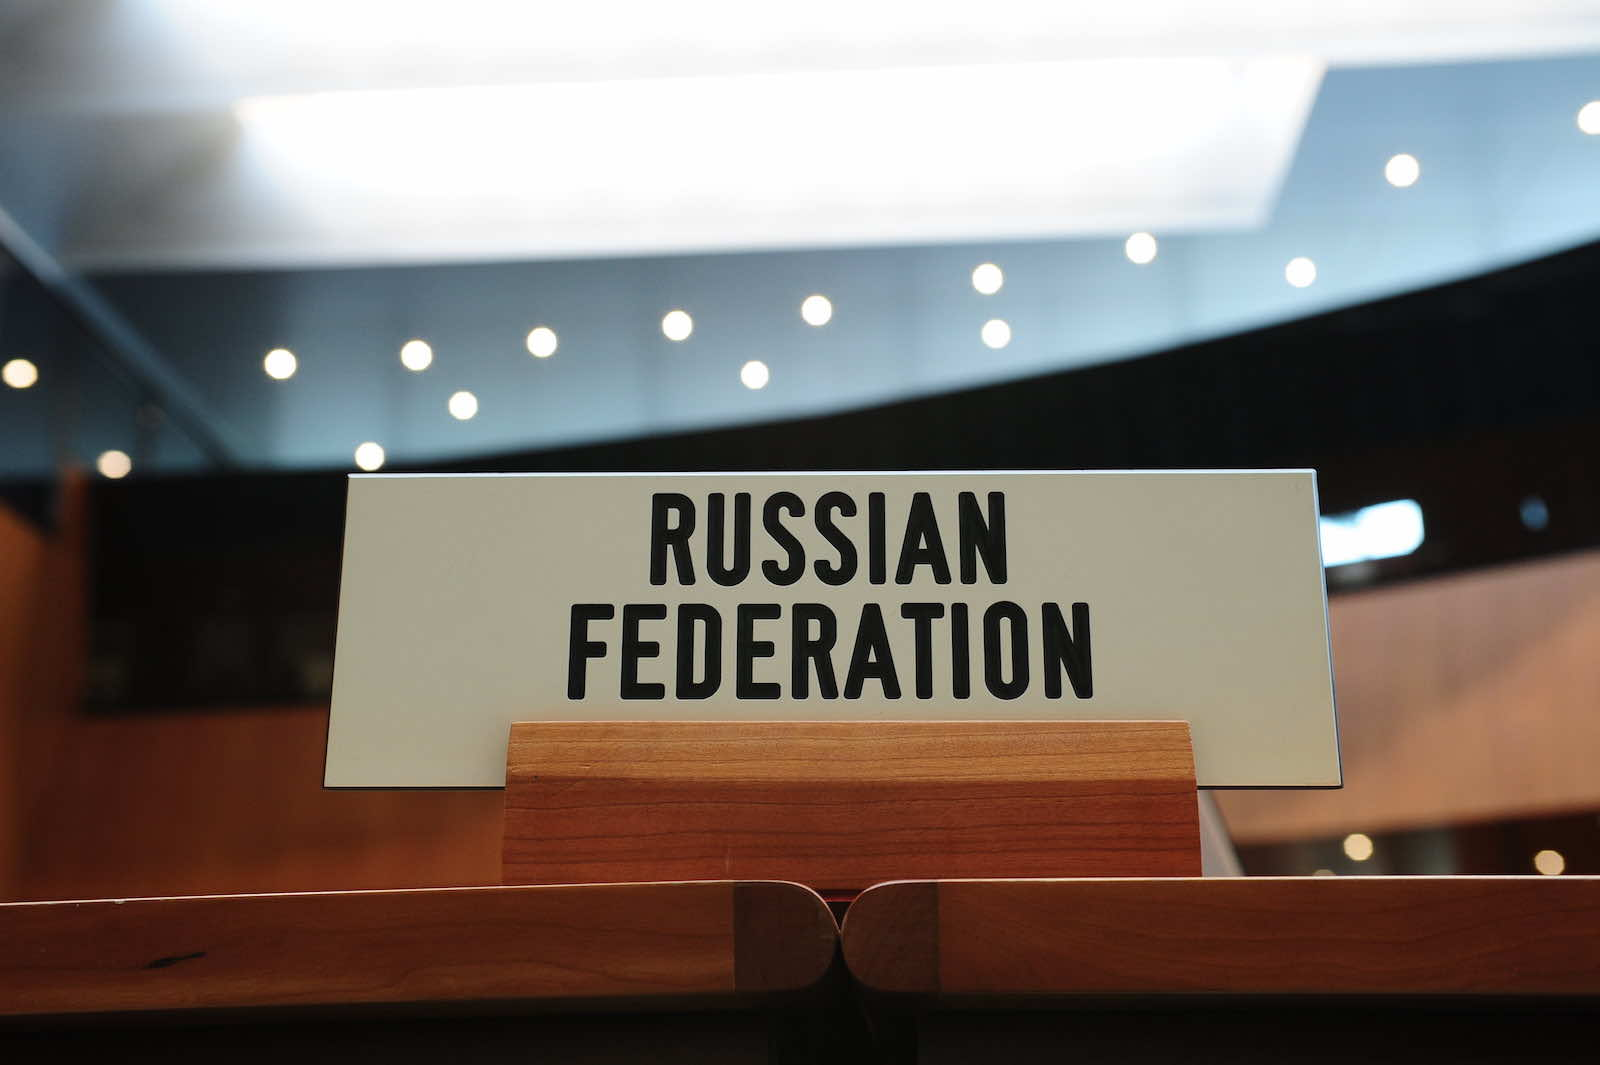 Neither the White House nor the Kremlin are anticipating any fundamental change in the relationship (WTO/Studio Casagrande)